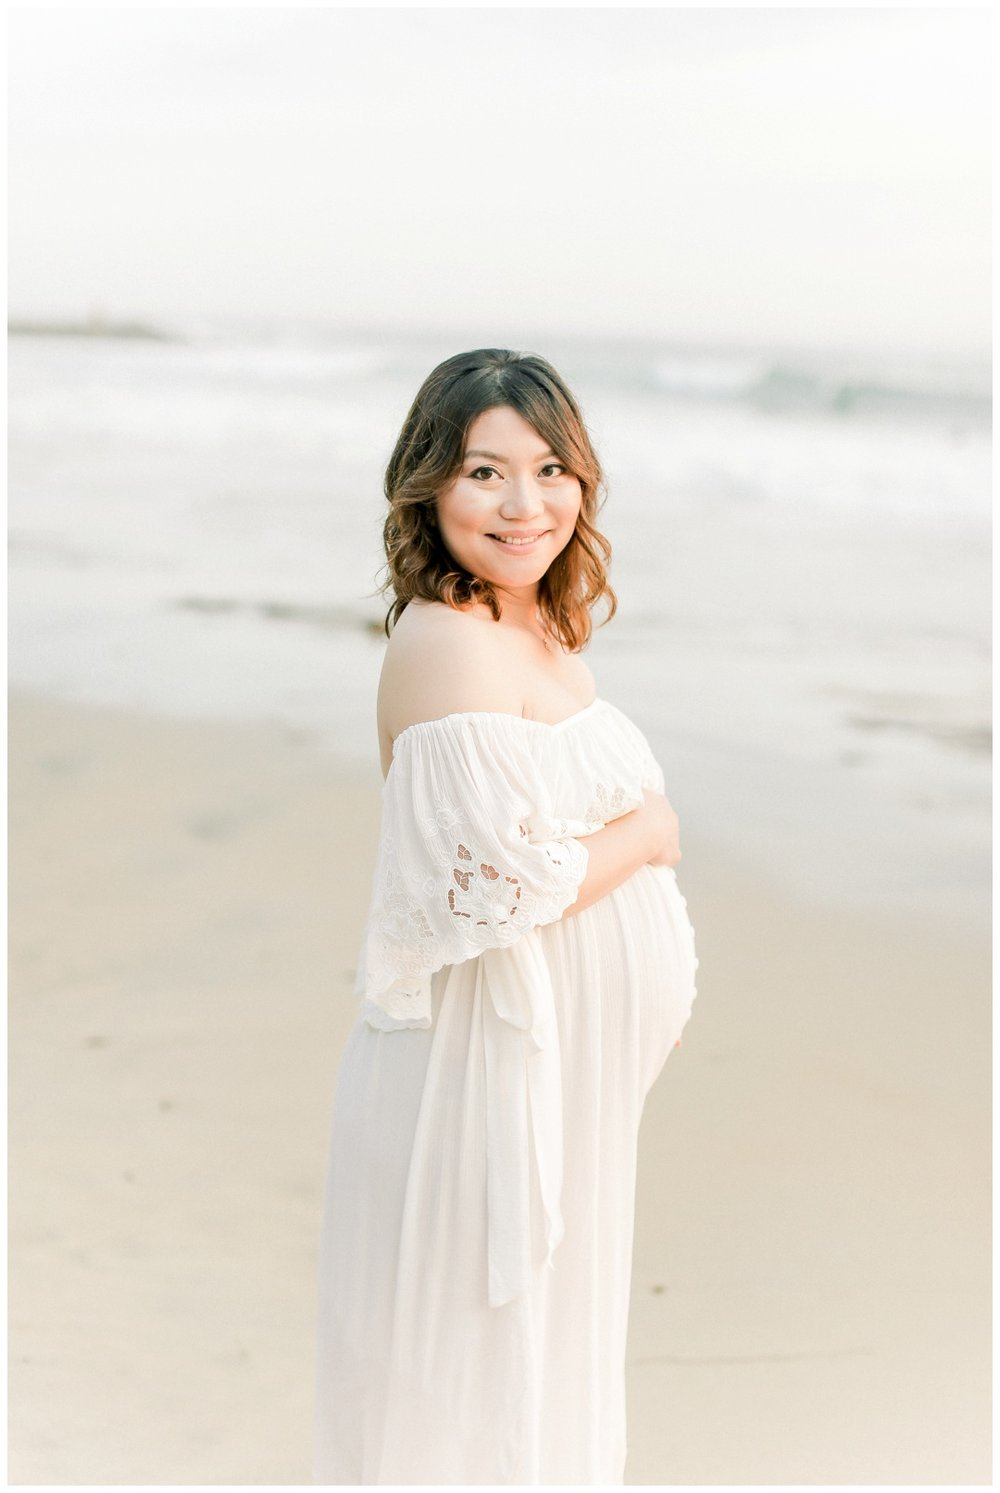 Newport_Beach_Maternity_Photographer_The_Koontz_Maternity_Session_Newport_Beach_Maternity_Photography_Orange_County_Photography_Cori_Kleckner_Photography_Orange_County_Beach_Photography_The_Ritz_Carlton_Laguna_Niguel_Resort_ Maternity_Session__1731.jpg